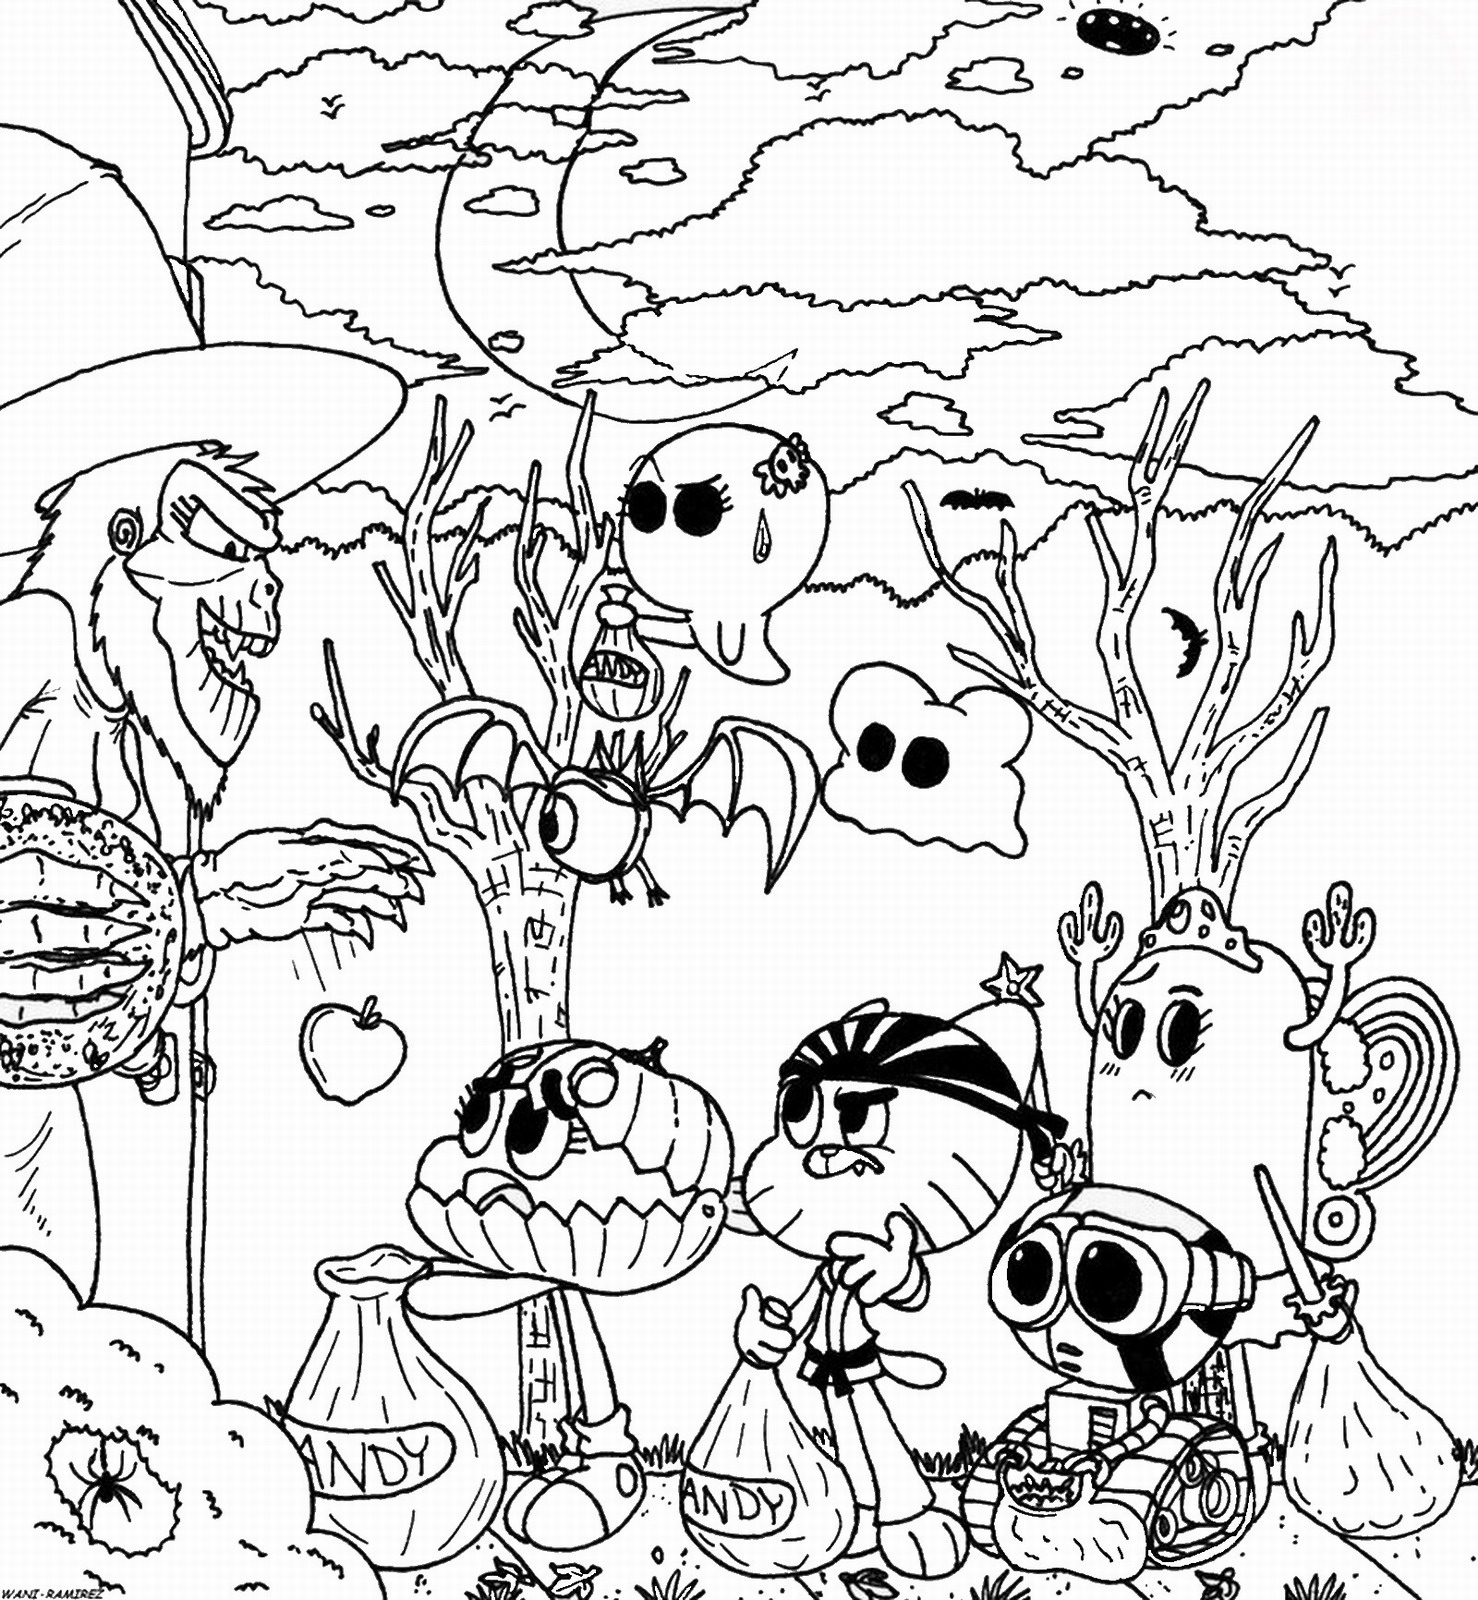 gumball cartoon coloring pages the amazing gumball coloring picture coloring pages gumball pages cartoon coloring